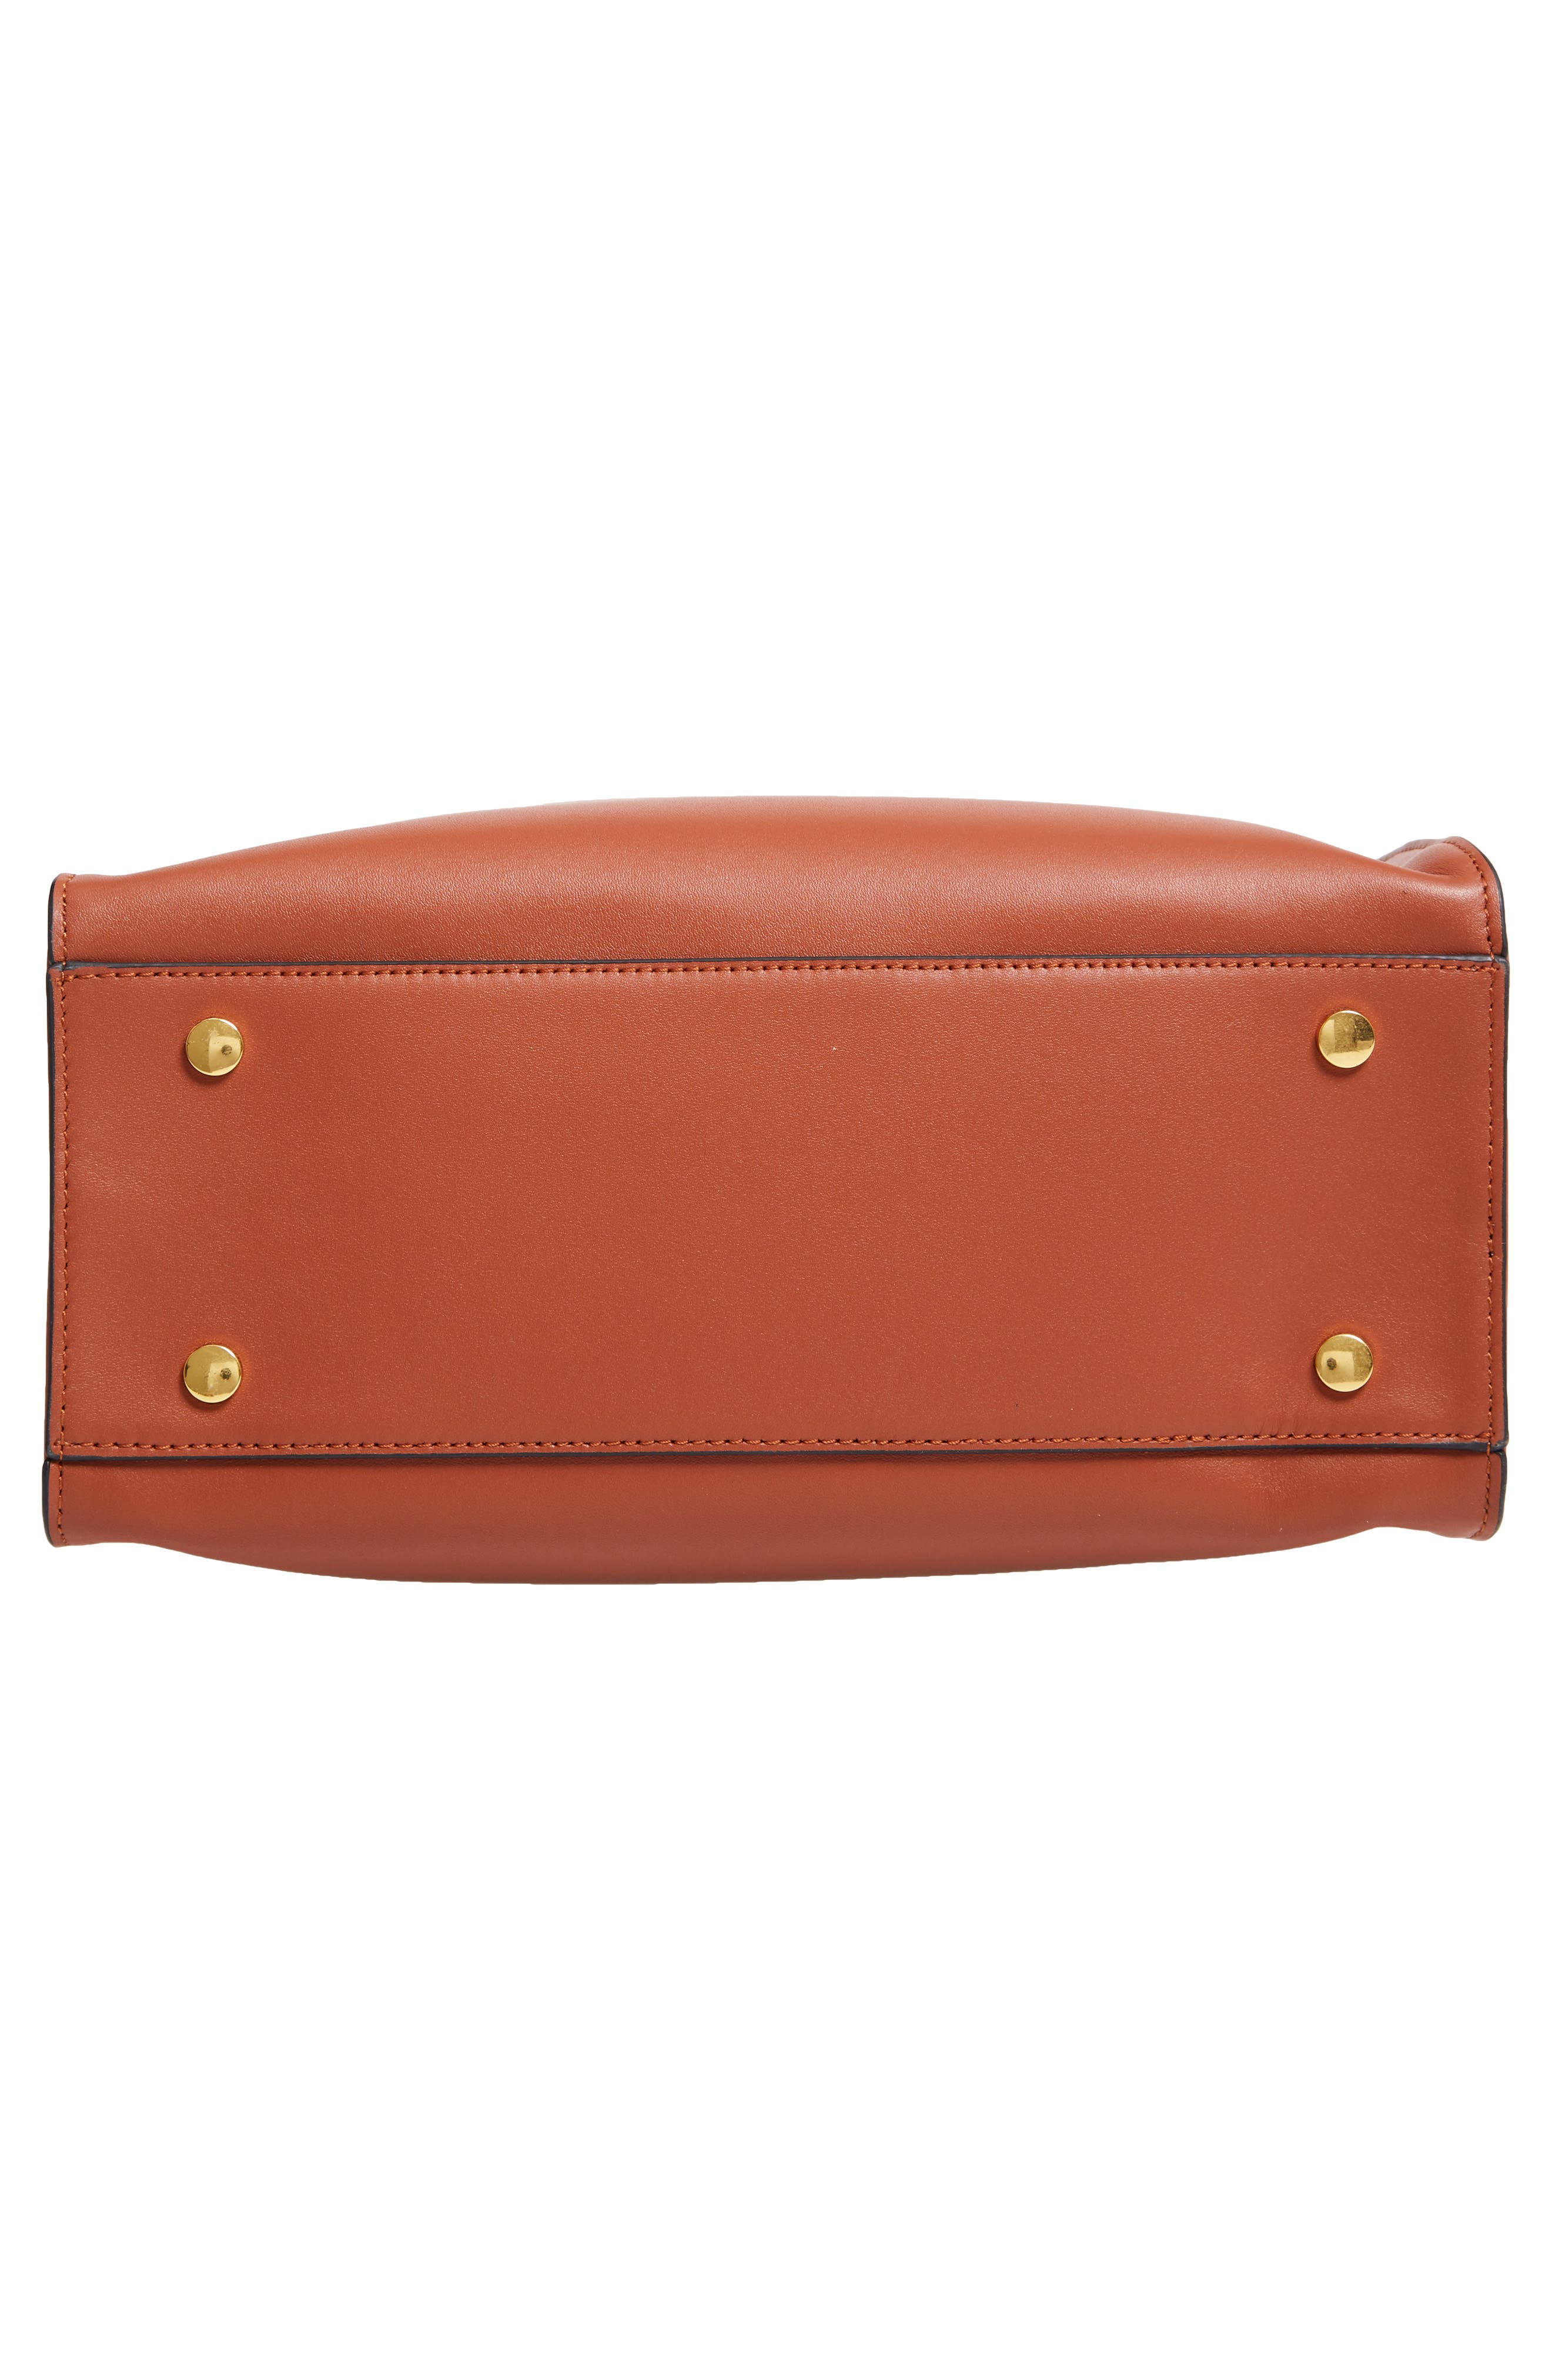 Harriet Leather Box Tote,                             Alternate thumbnail 6, color,